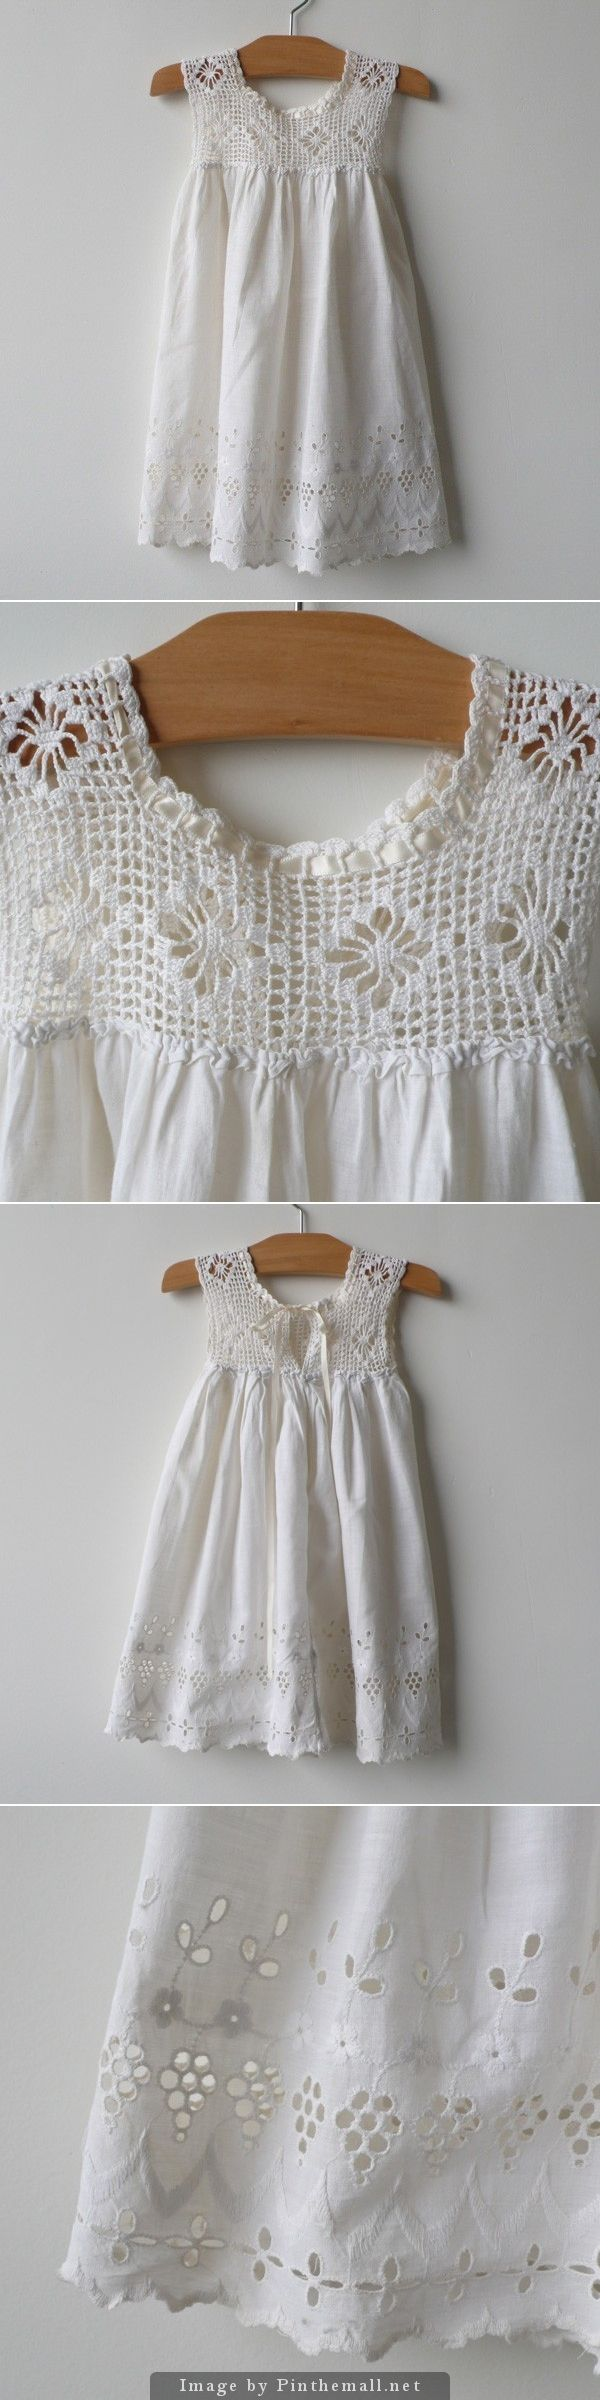 Exquisite. Crochet c. 1925. Soft cotton slip dress with crocheted bodice (filet crochet spider lace) and lovely eyelet hemline (broderie anglaise skirt). An ivory ribbon runs through neckline and ties in back above 1 snap. ~~ http://www.belleheir.com/shop/two/crochet-c-1925